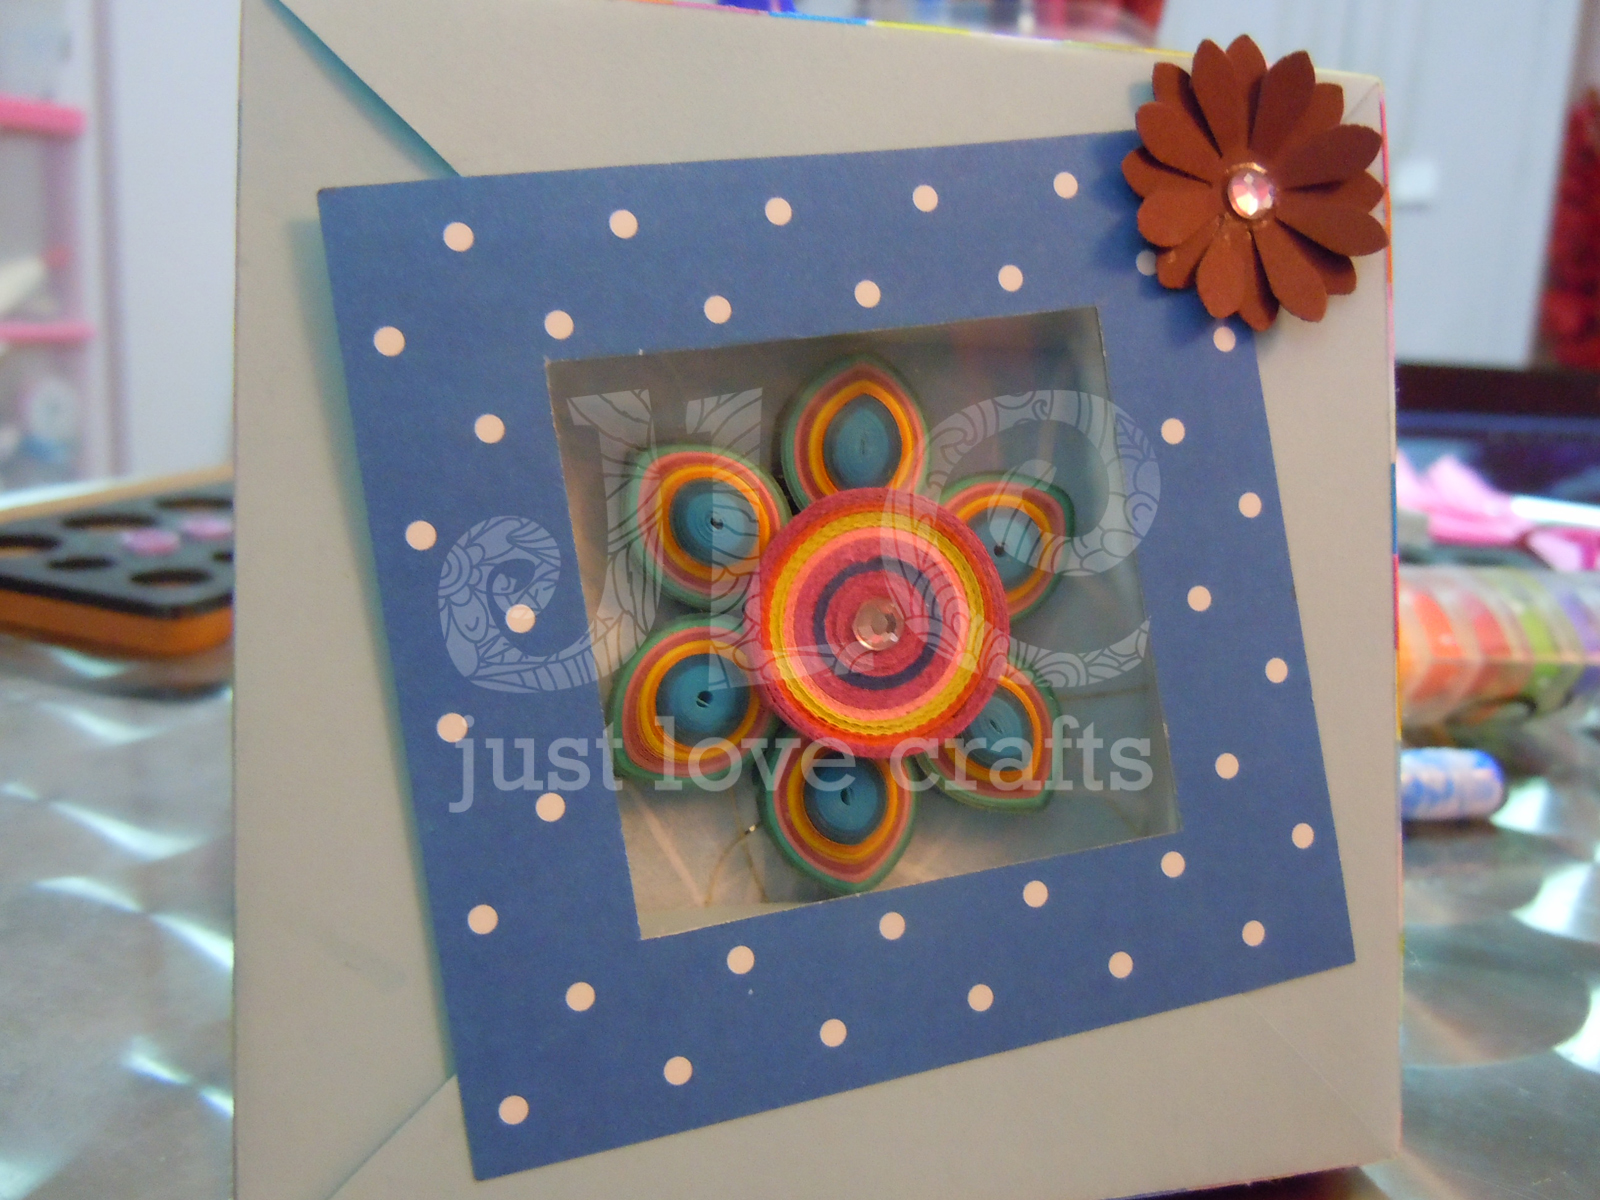 How To Make A Photo Frame Using Paper - Page 4 - Frame Design ...